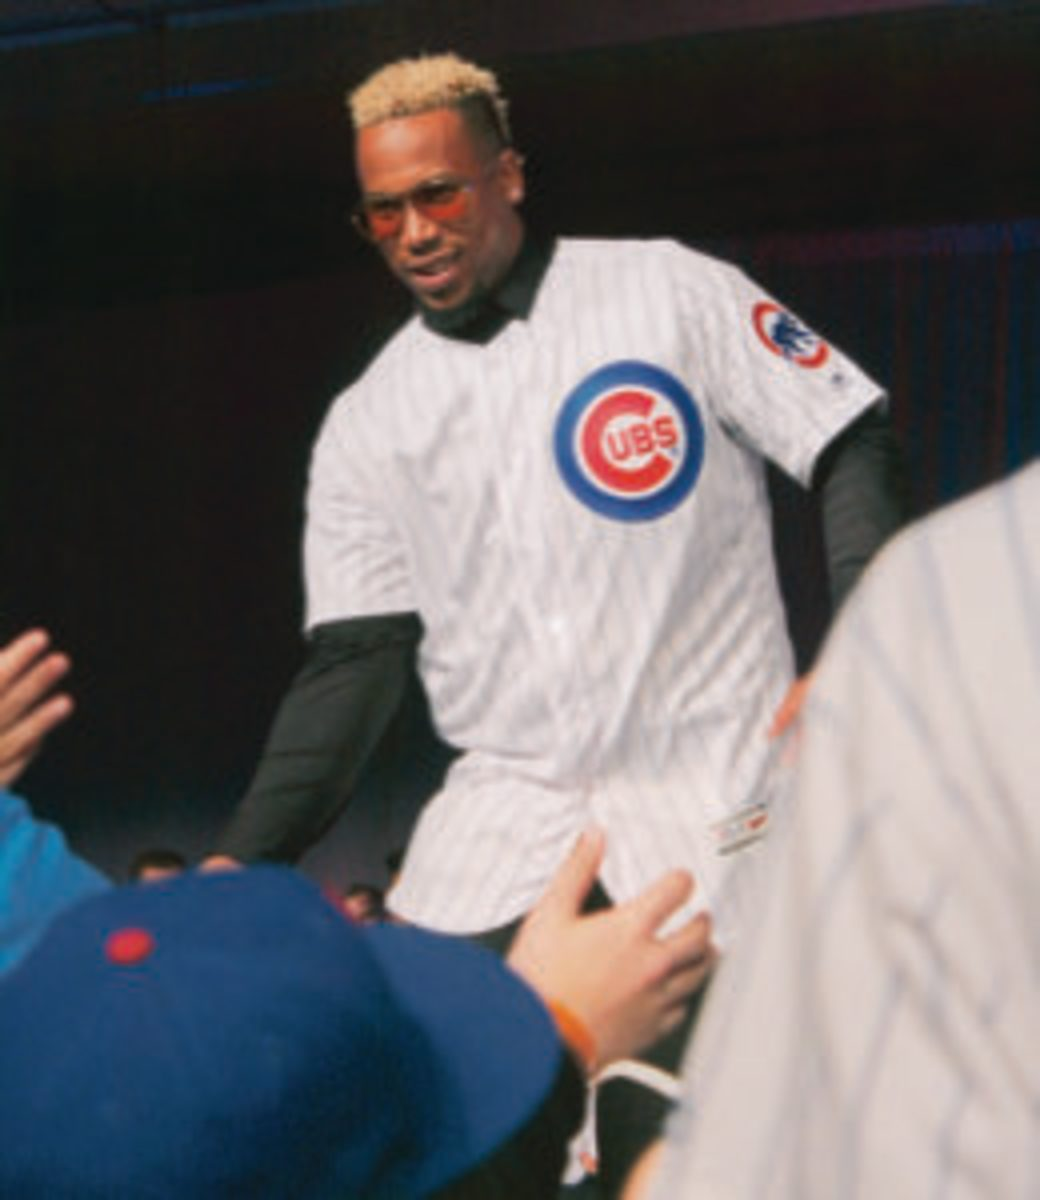 Pedro Strop greeted by fans at the 2019 Cubs Convention.